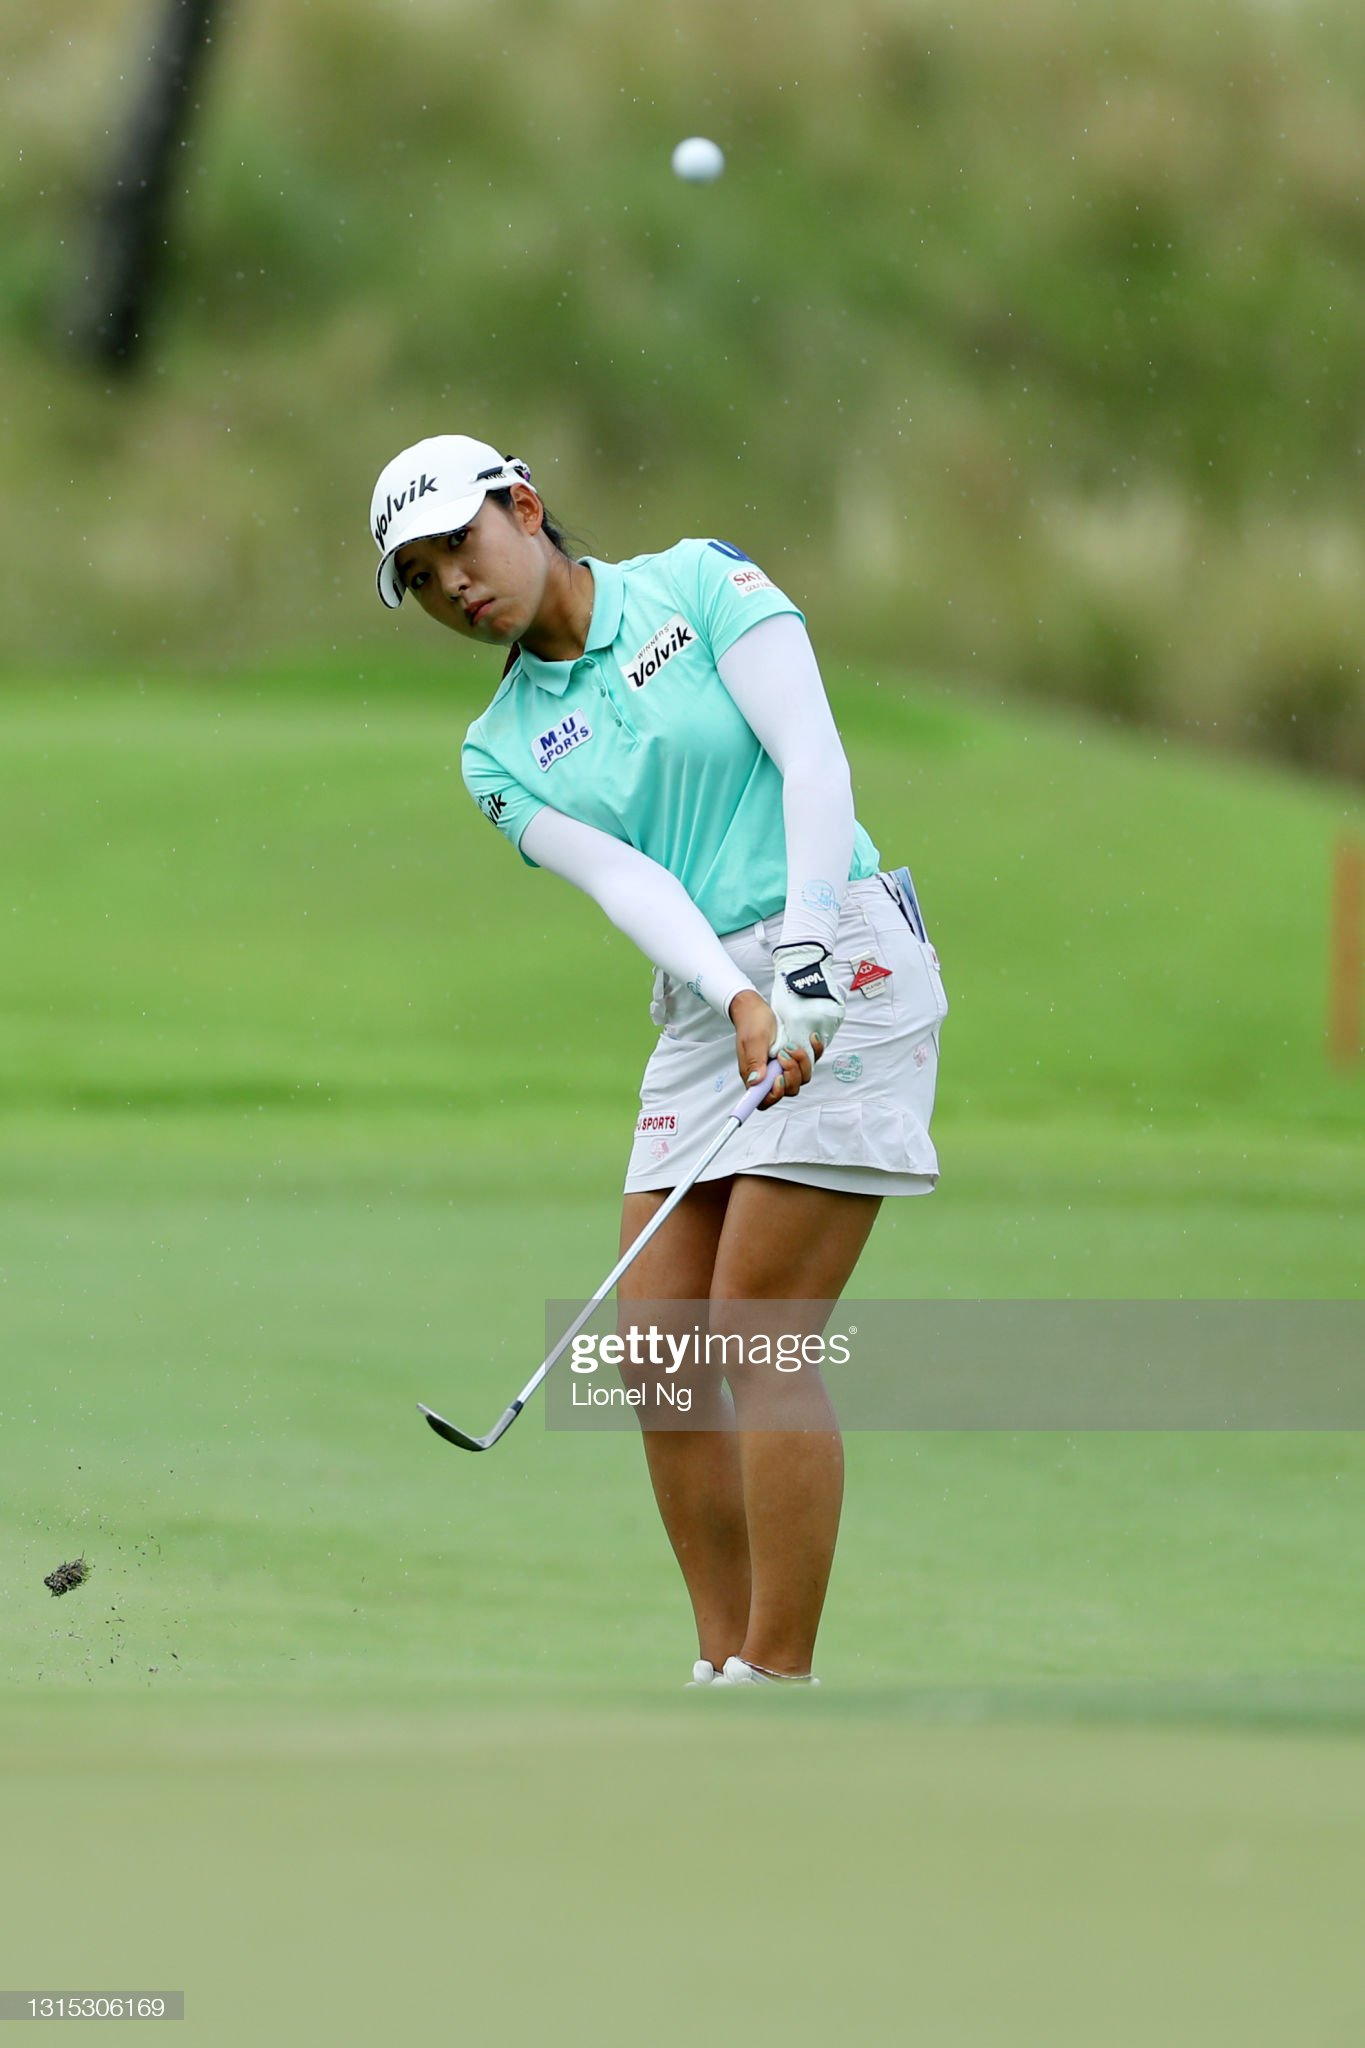 https://media.gettyimages.com/photos/mi-hyang-lee-of-south-korea-chips-onto-the-15th-green-during-the-of-picture-id1315306169?s=2048x2048